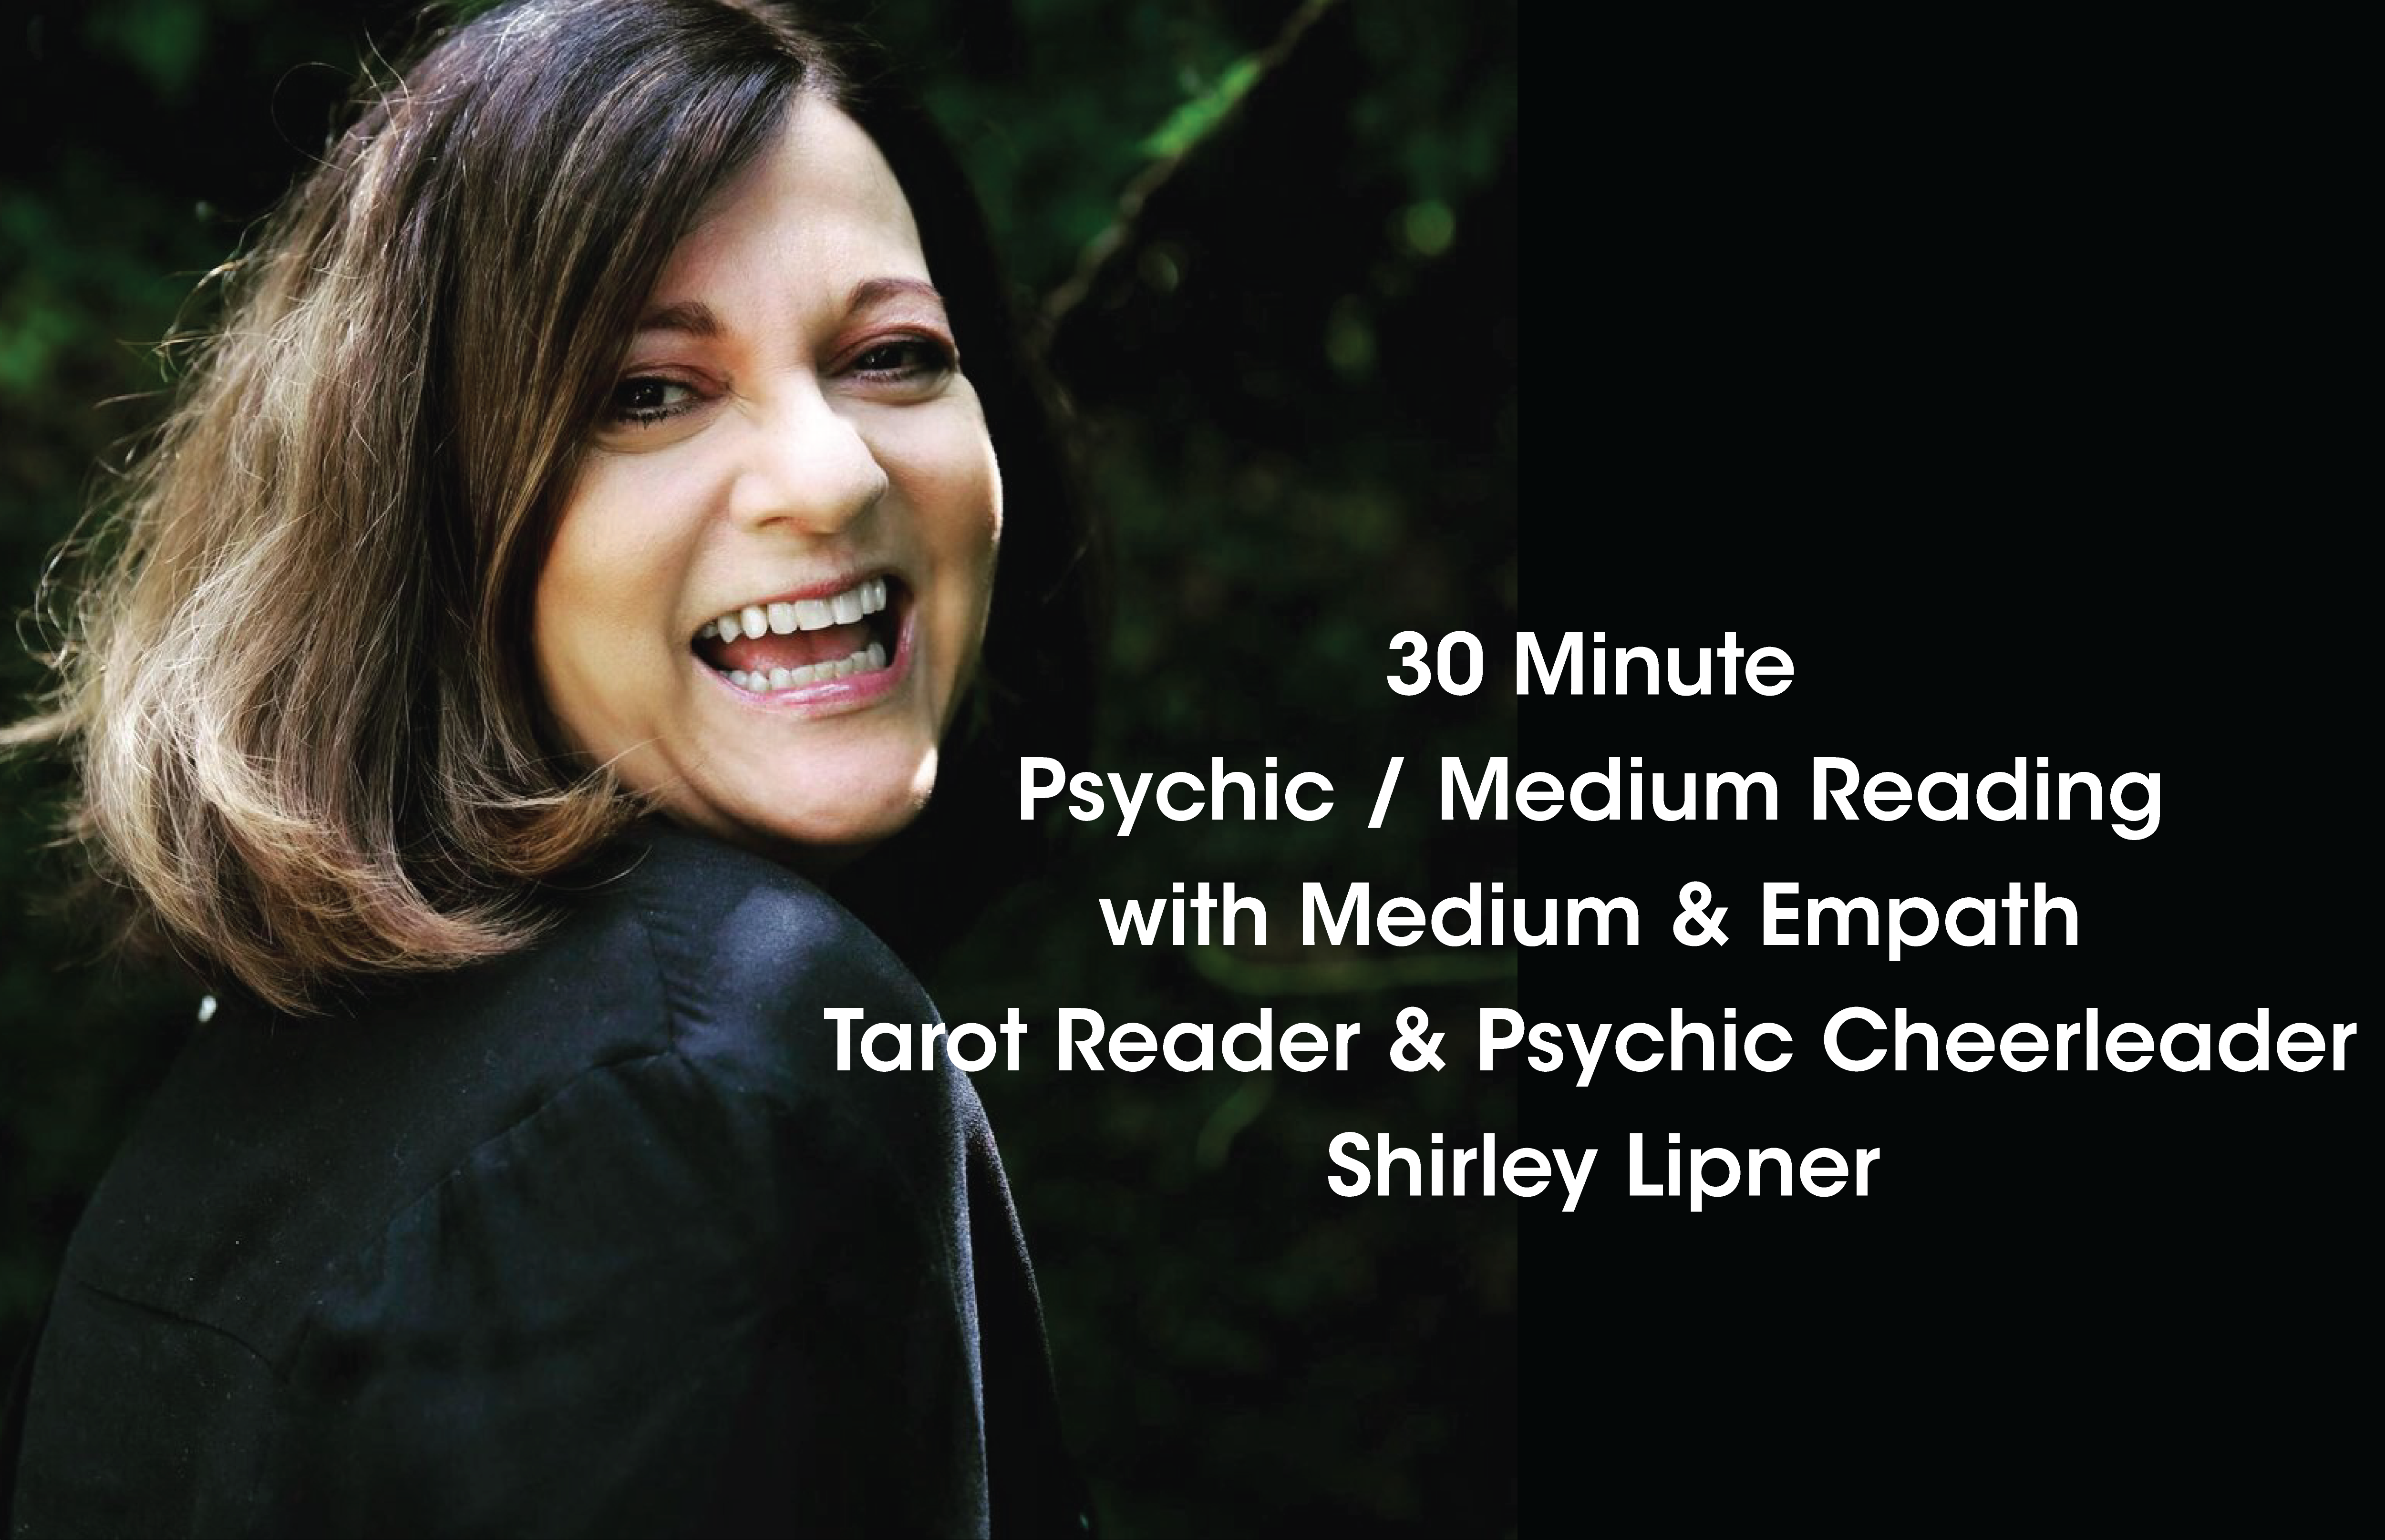 Shirley Lipner 30 minute Energy Reading